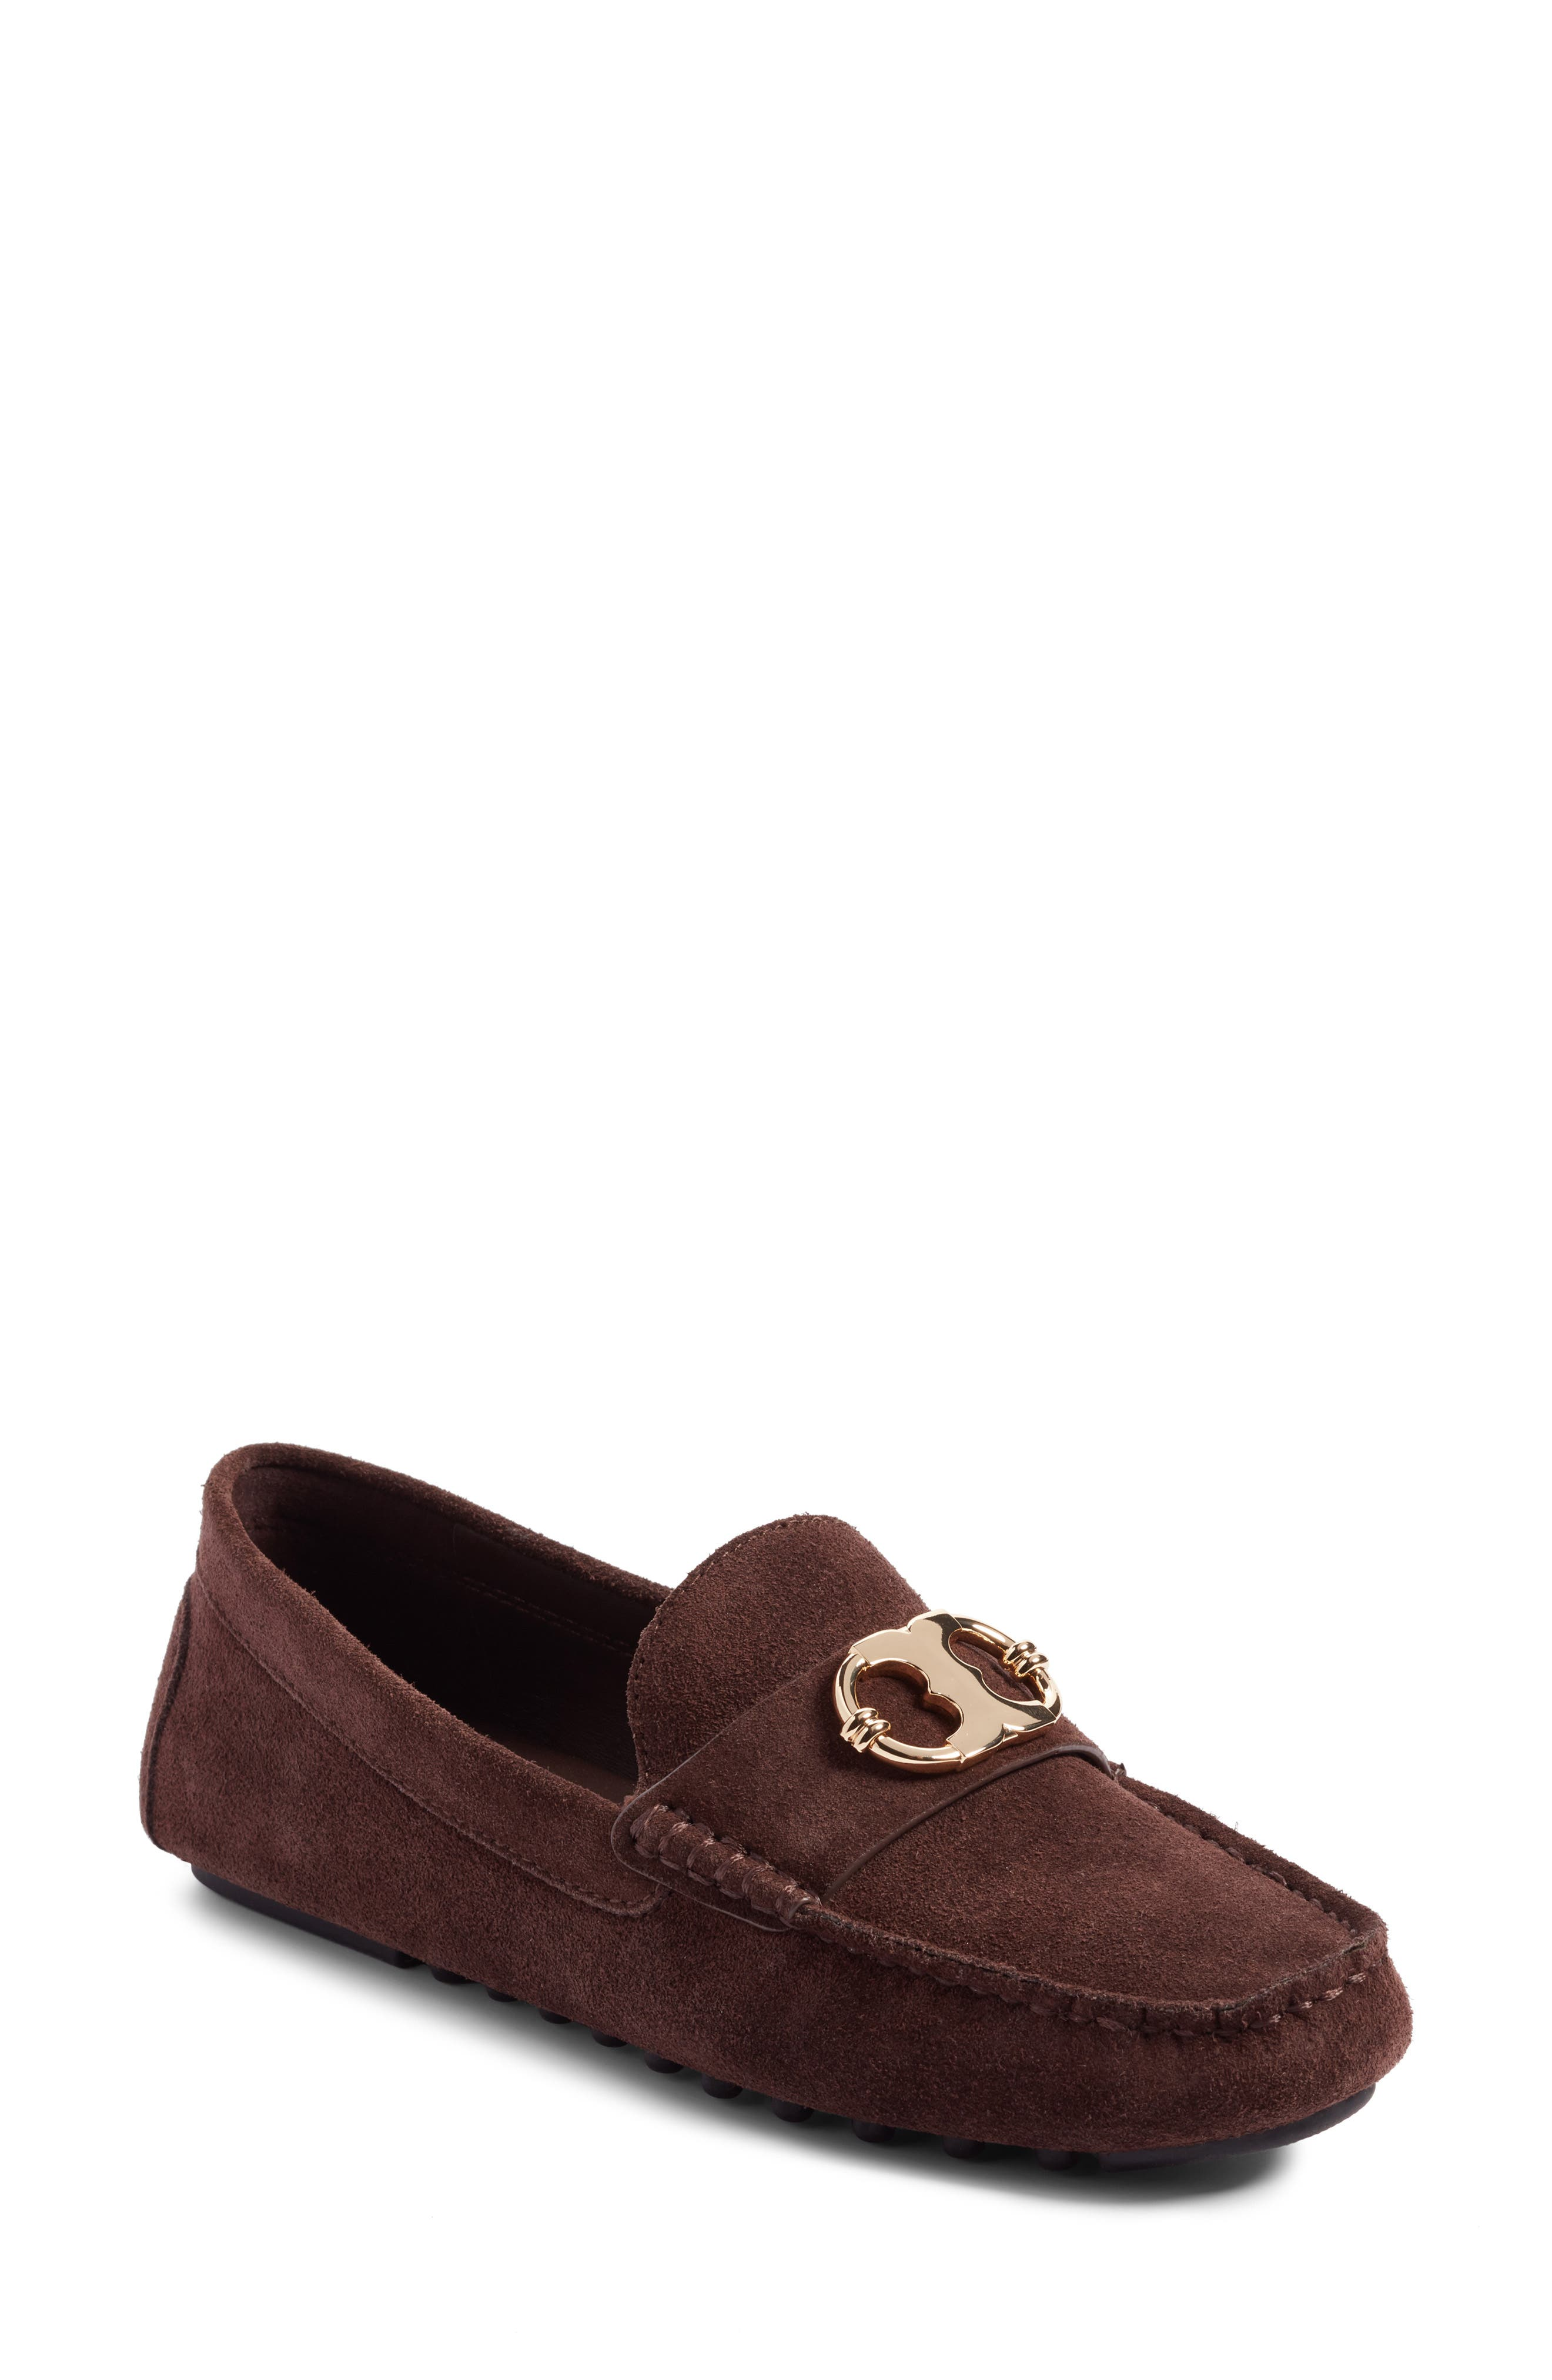 Tory Burch Gemini Driving Loafer (Women)